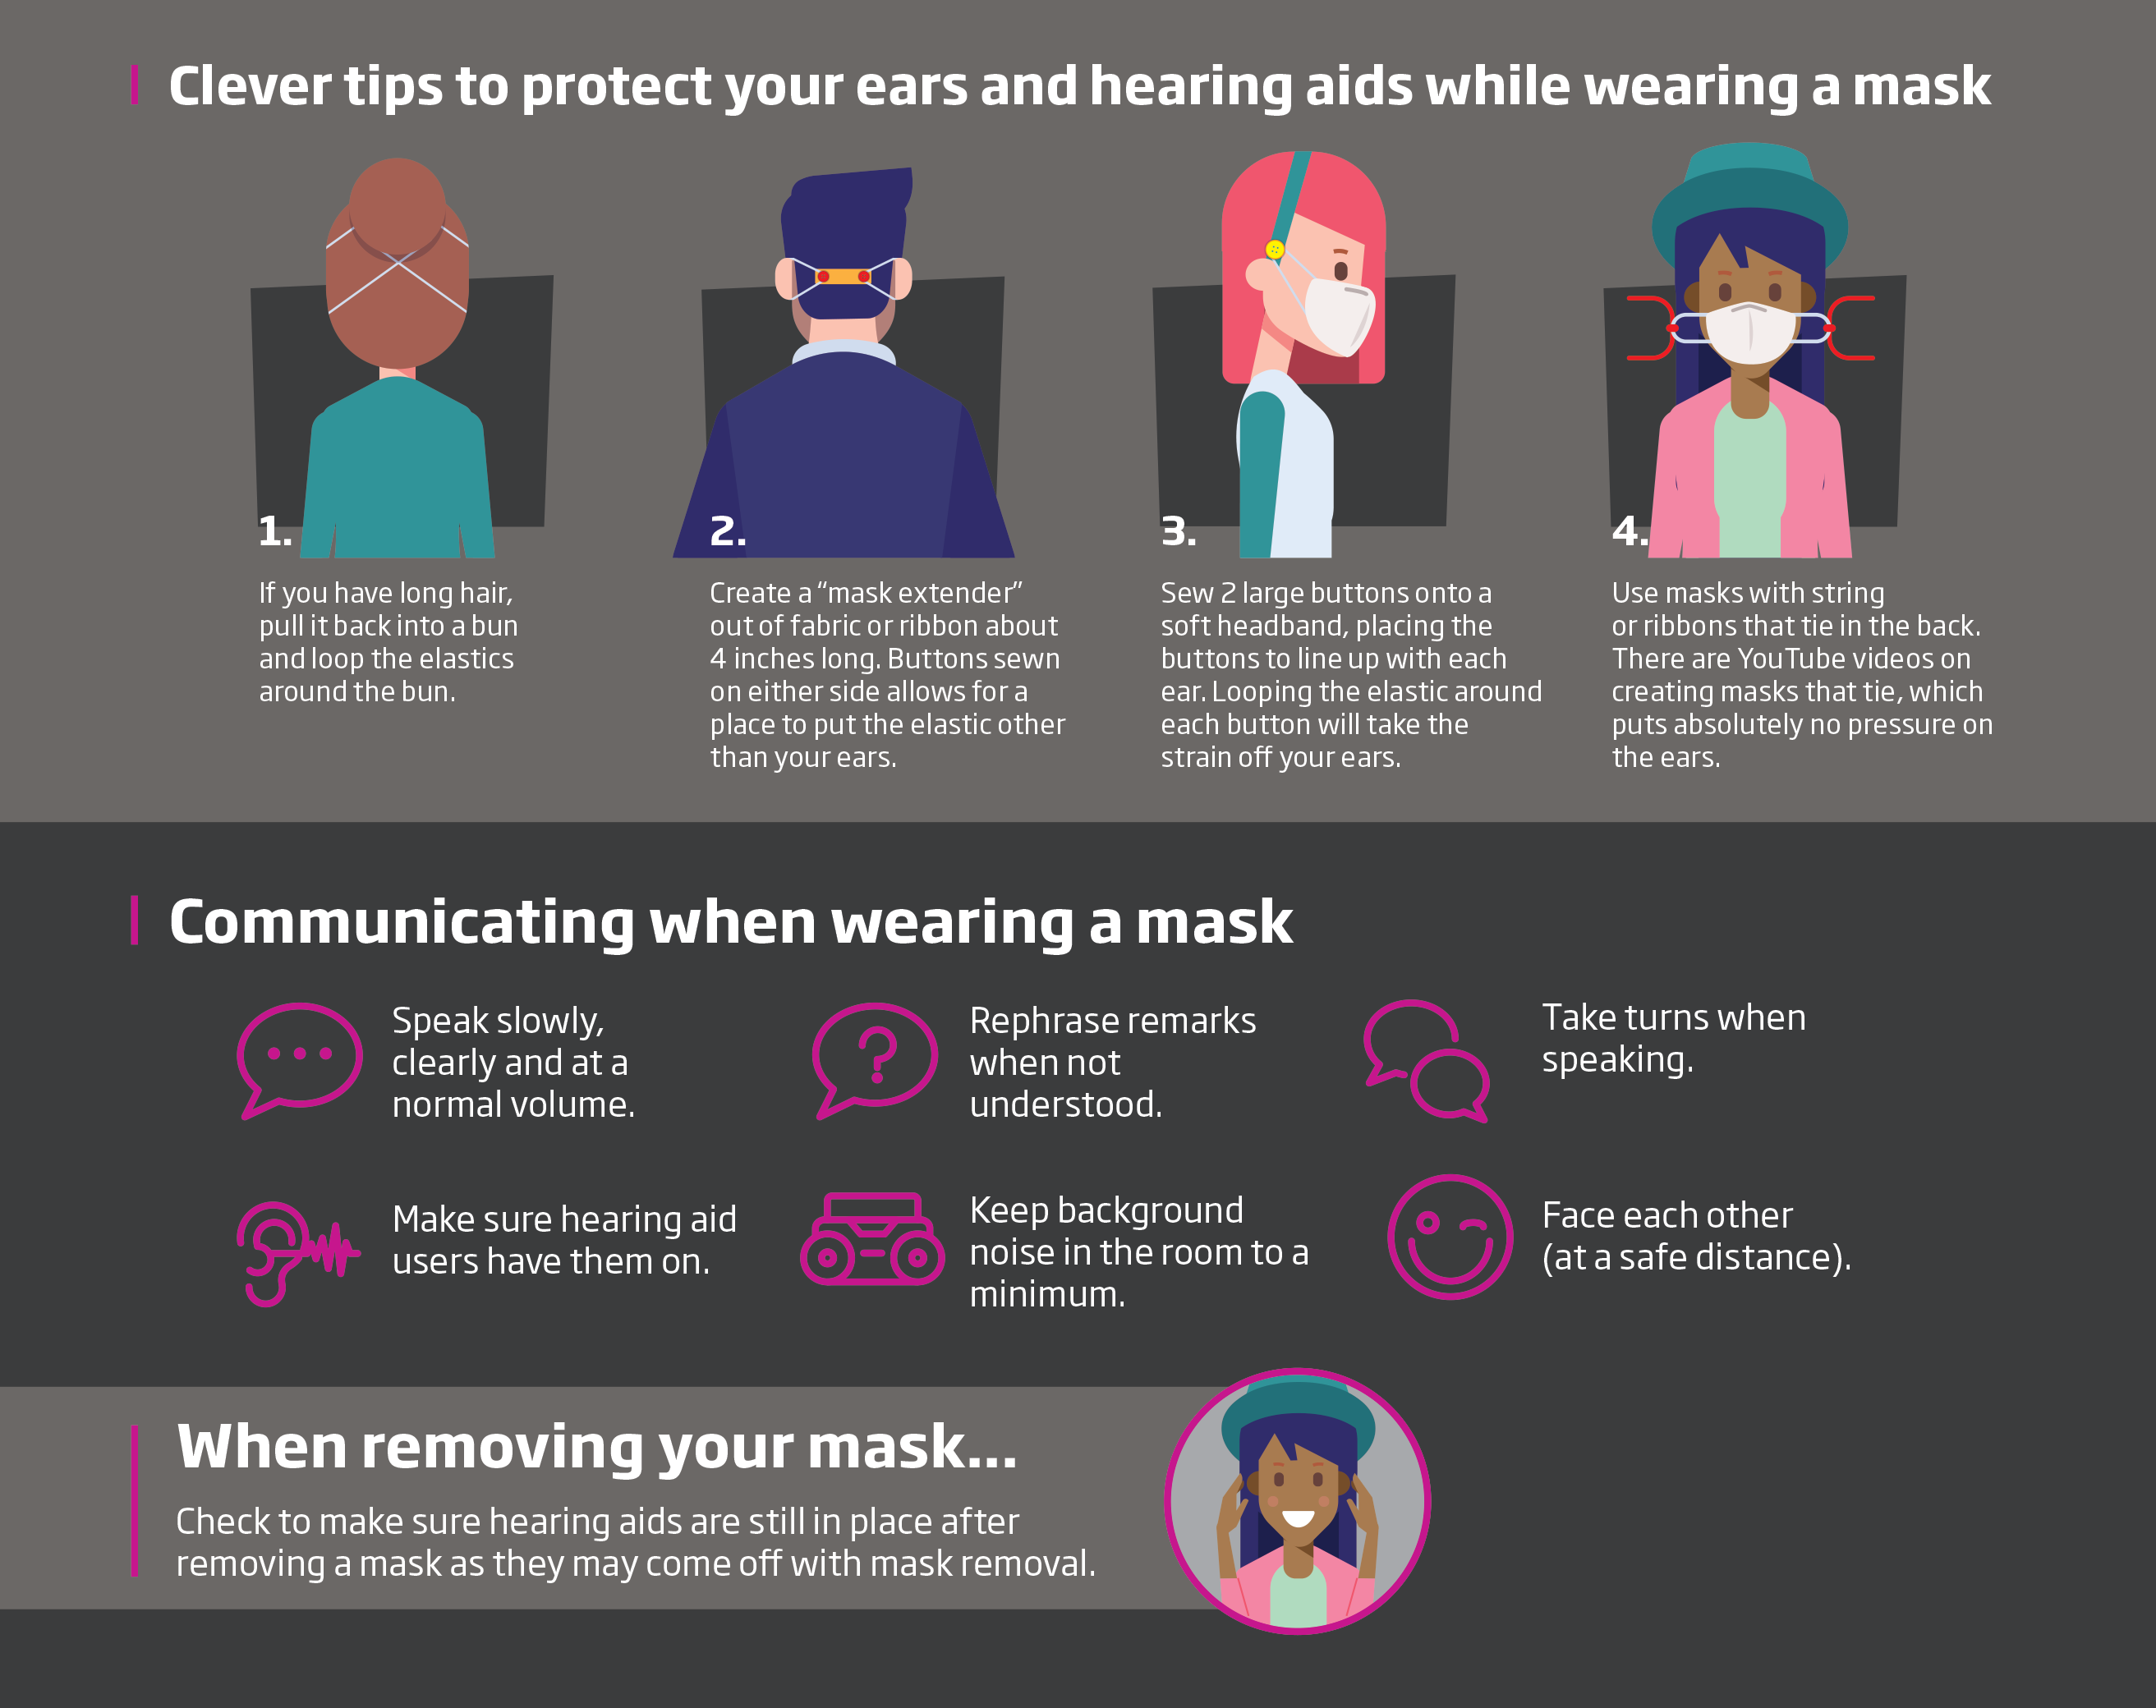 How to Wear a Mask with Your Hearing Aids